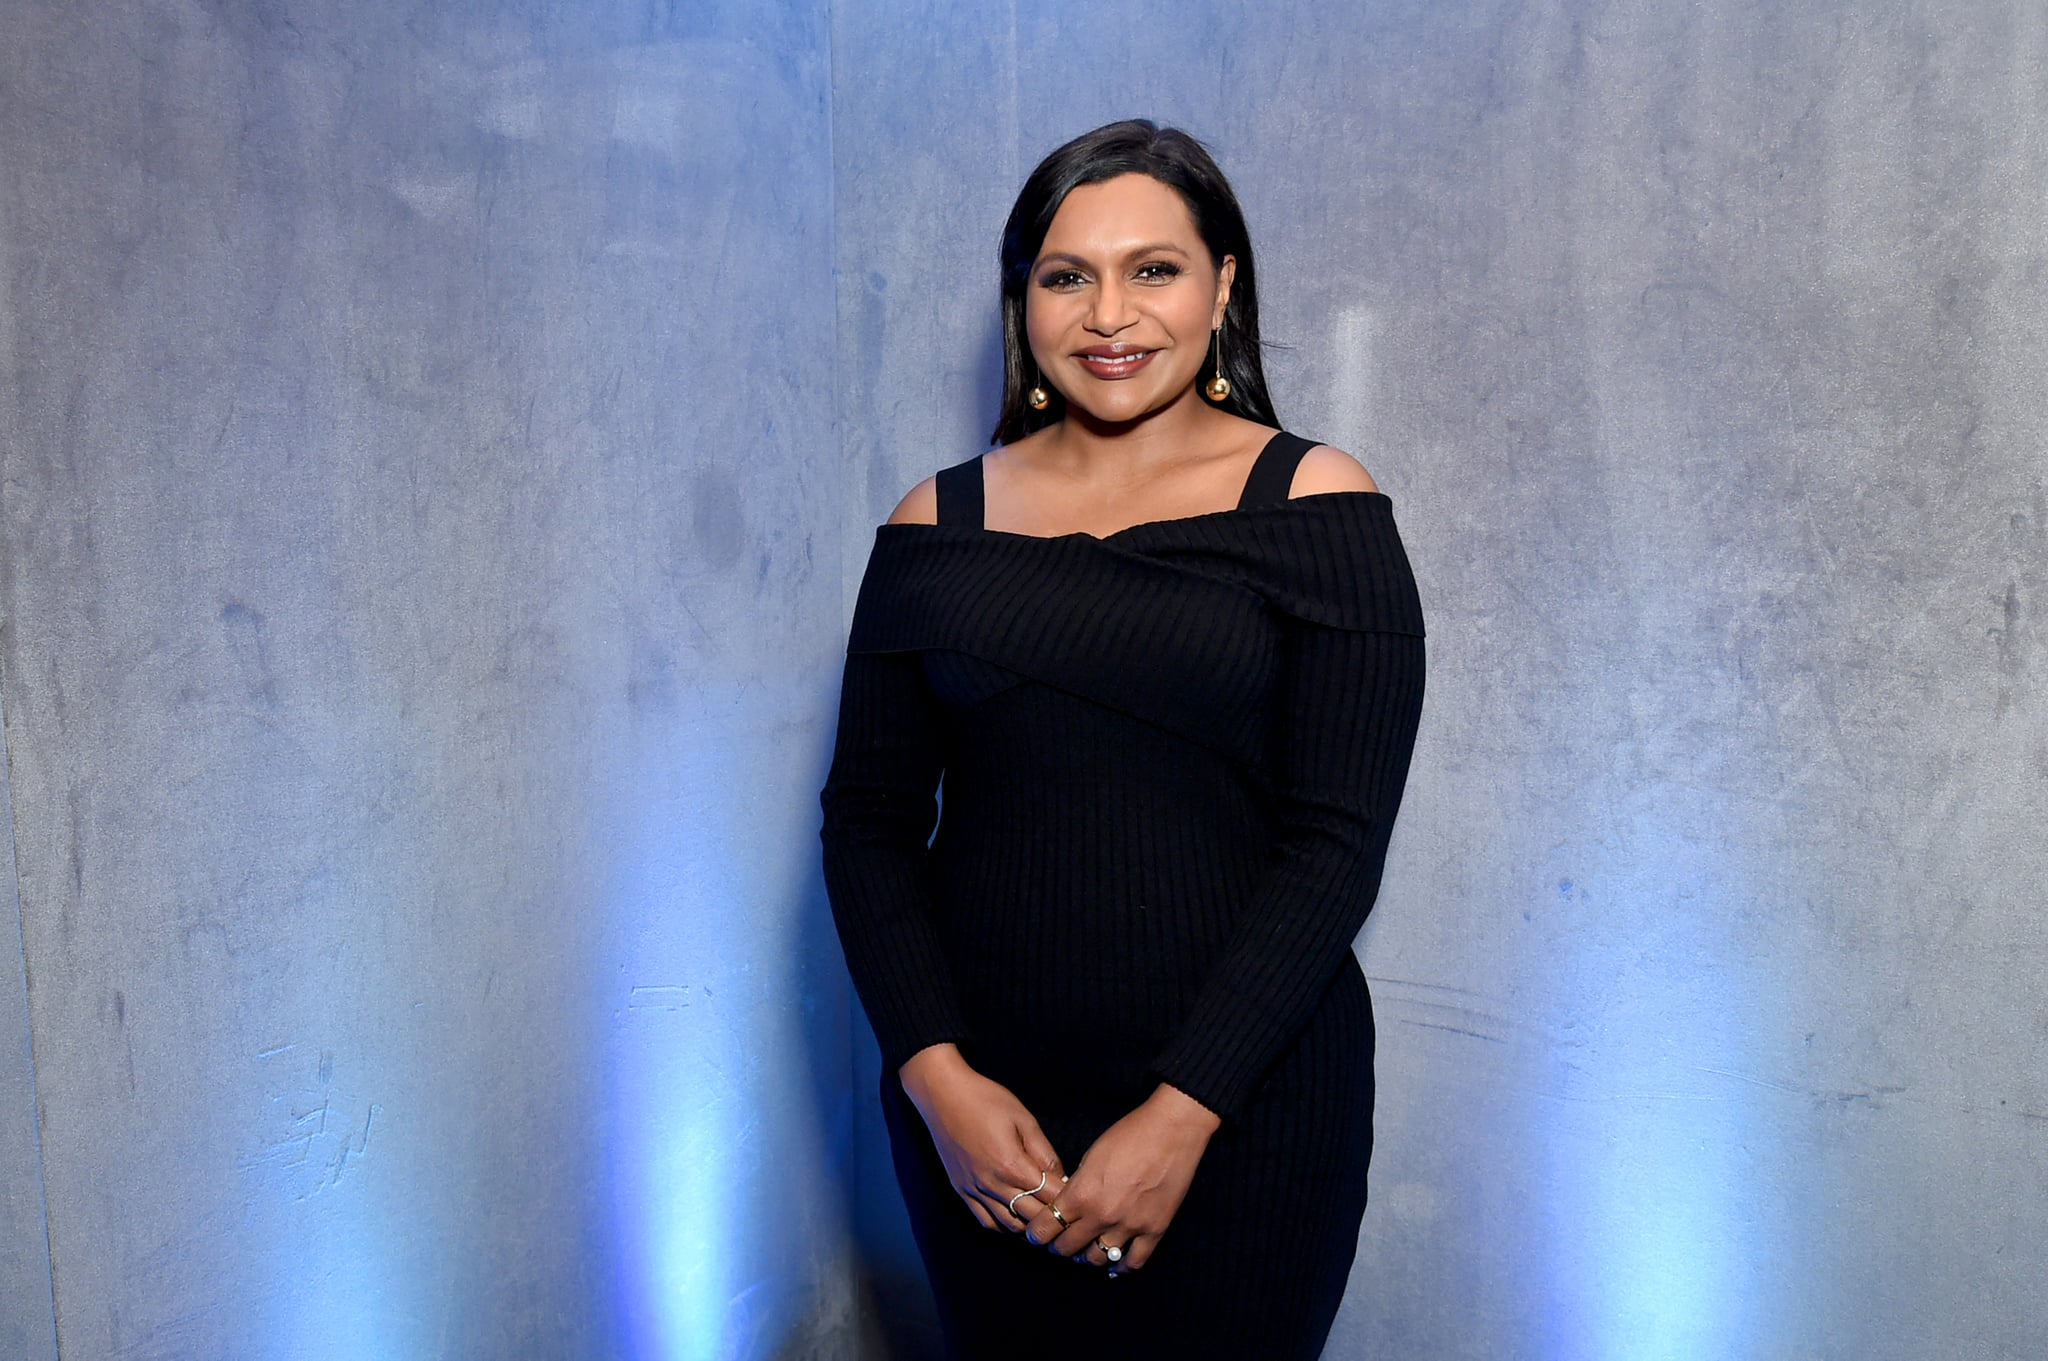 NEW YORK, NY - MAY 02:  Mindy Kaling poses for a photo in the Hulu Upfront 2018 Green Room at The Hulu theatre at Madison Square Garden on May 2, 2018 in New York City.  (Photo by Mike Coppola/Getty Images for Hulu)